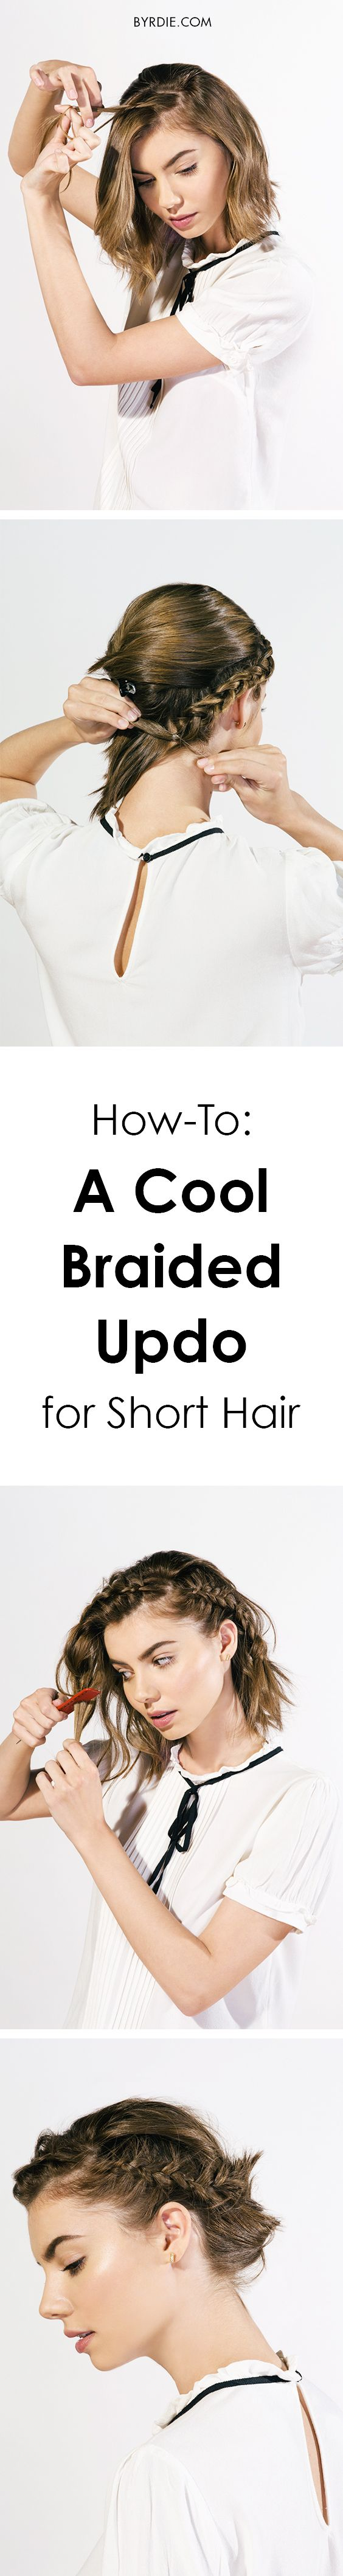 The perfect updo for short hair